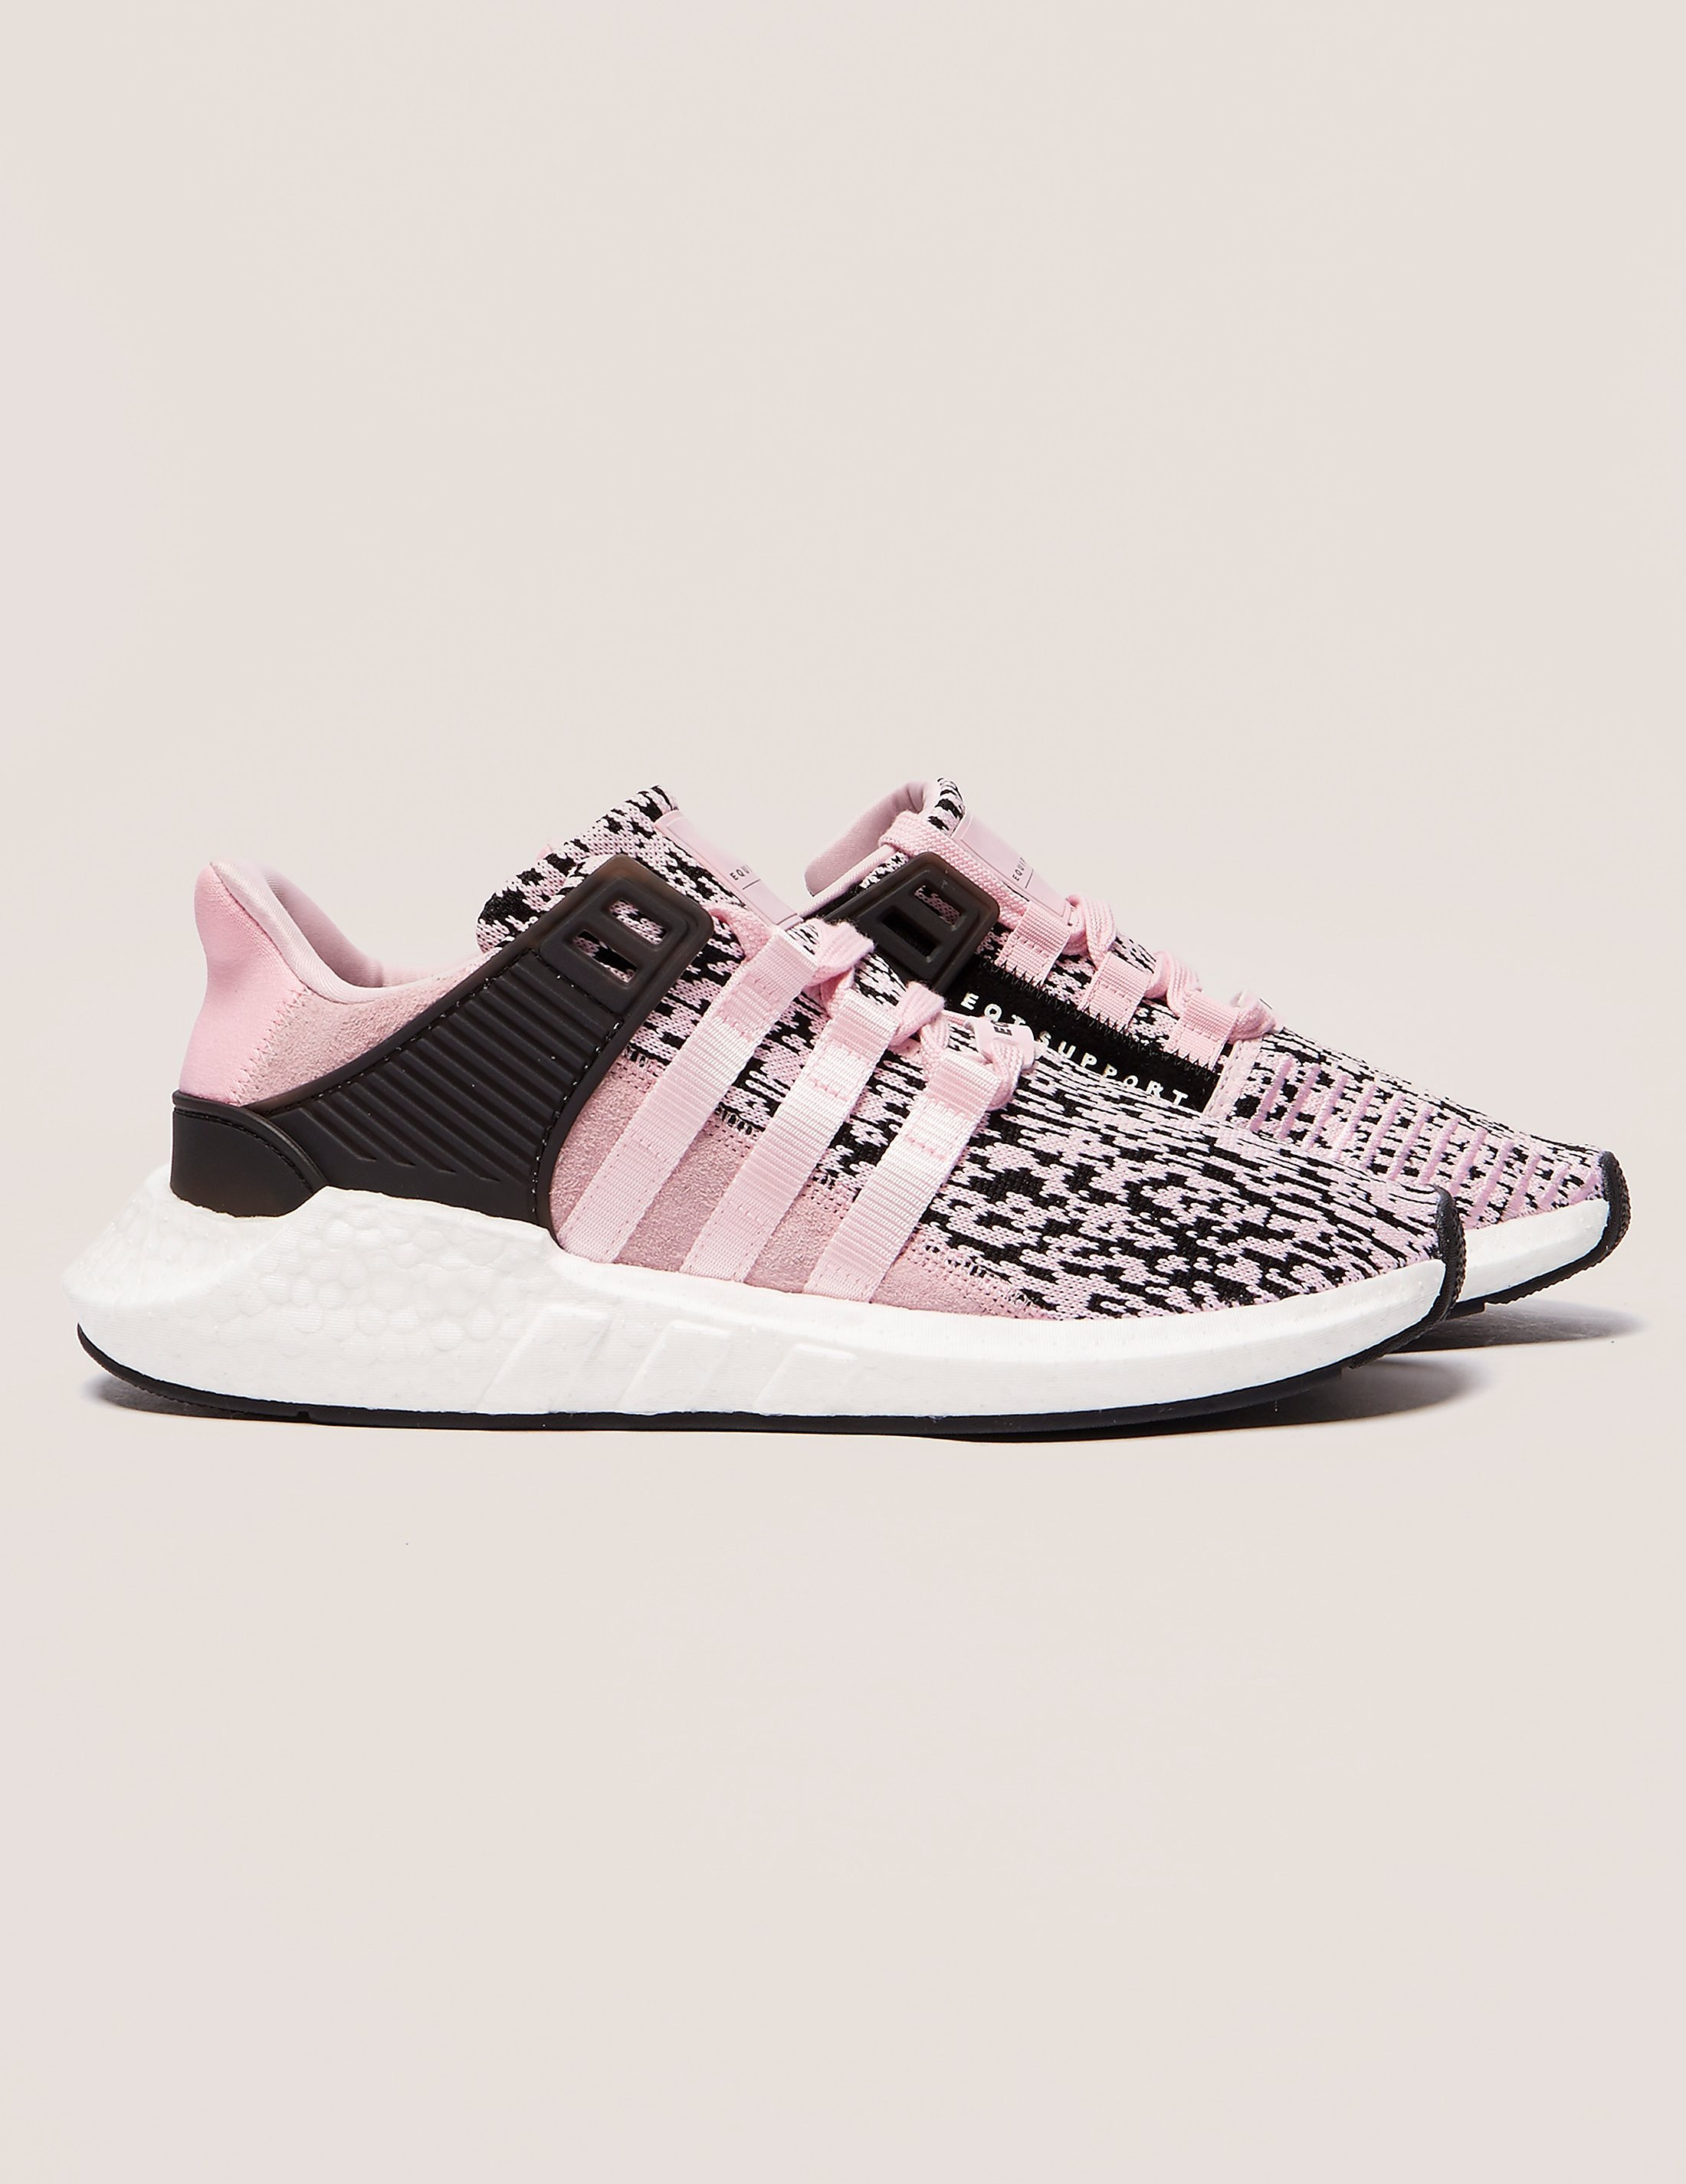 adidas Originals EQT Support Boost 93/17